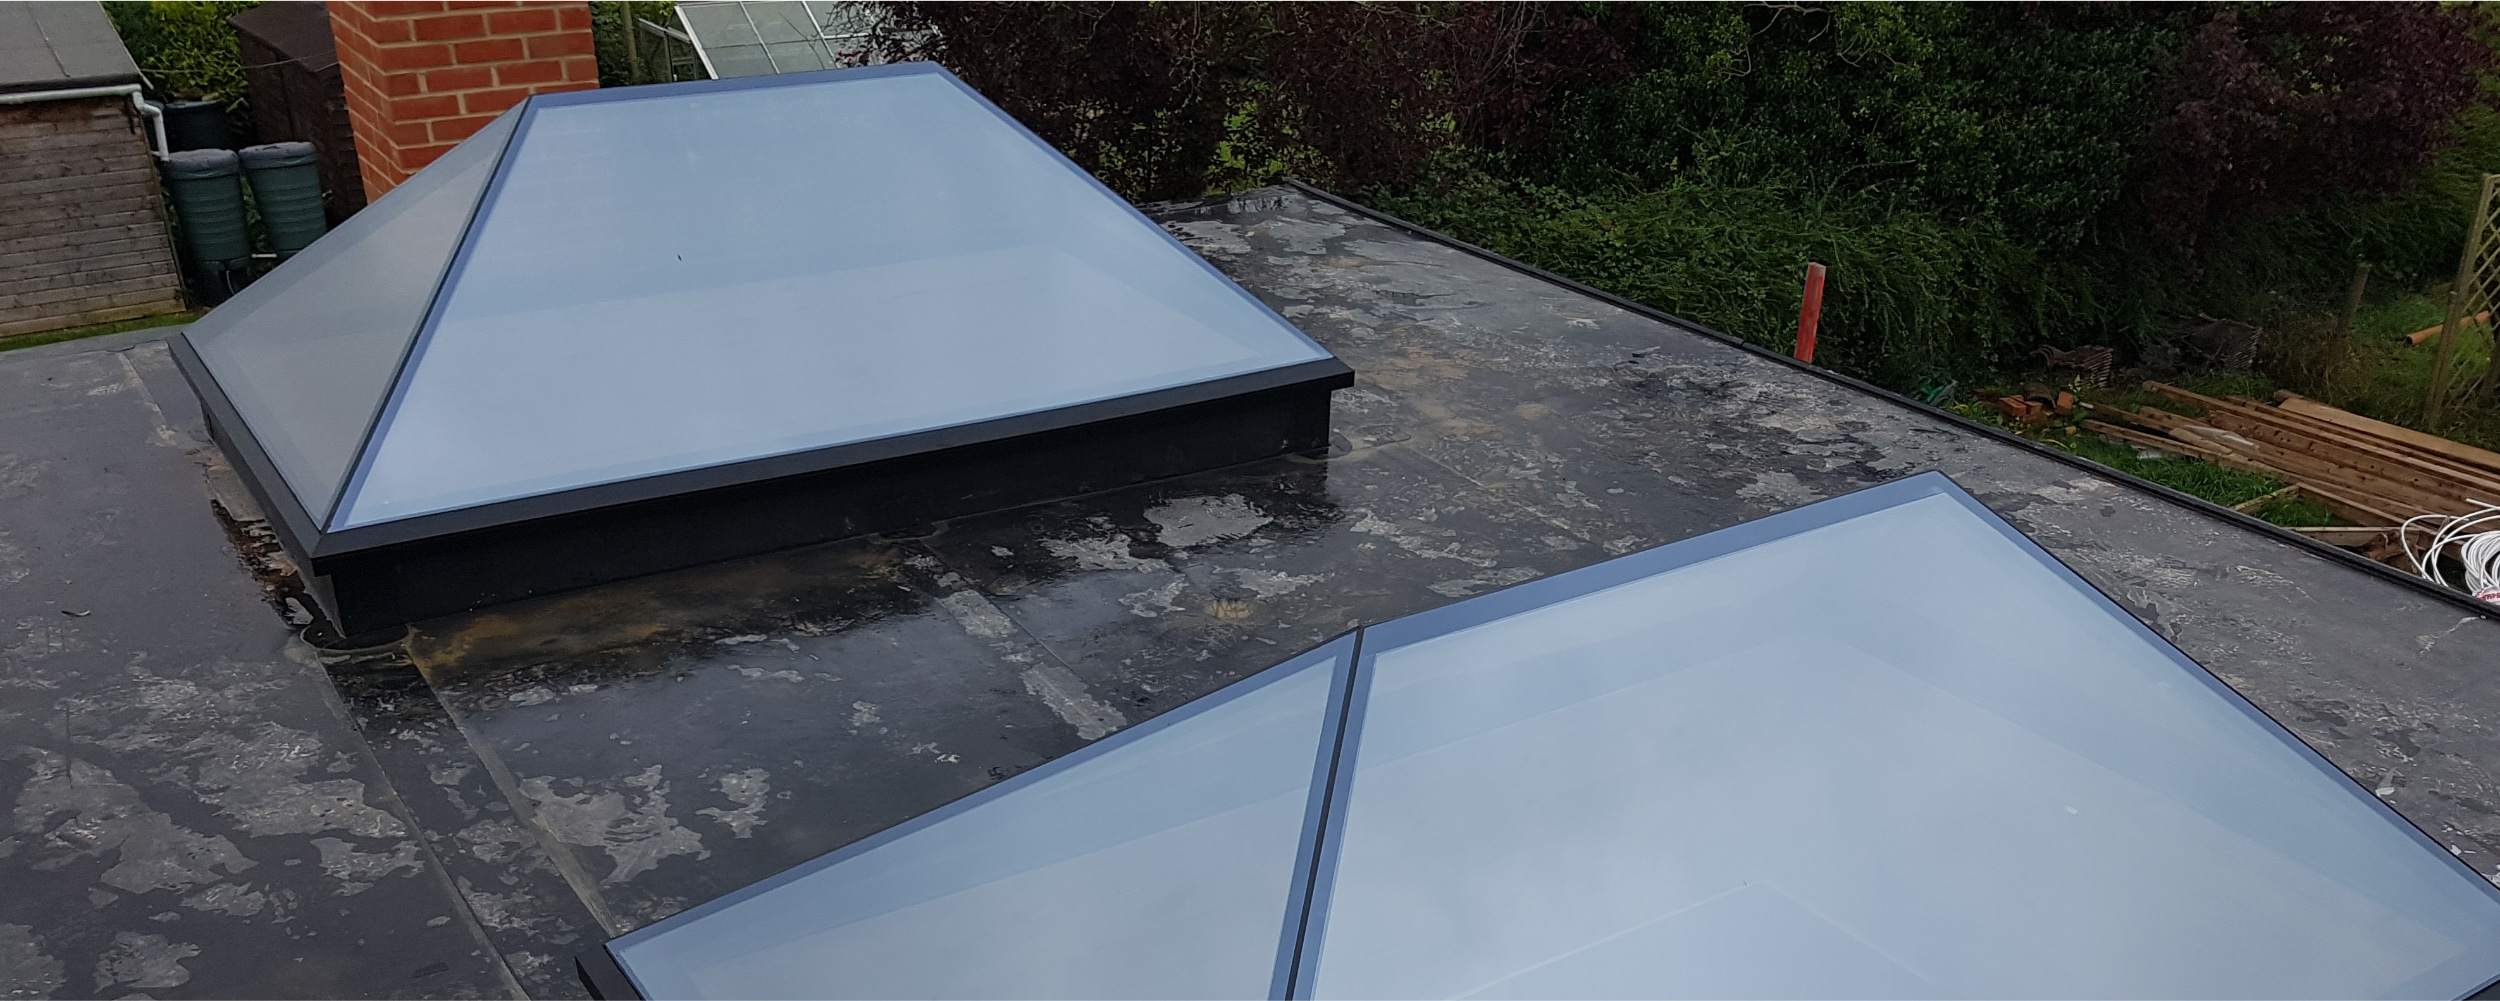 Exterior view of the Frameless glass roof lanterns